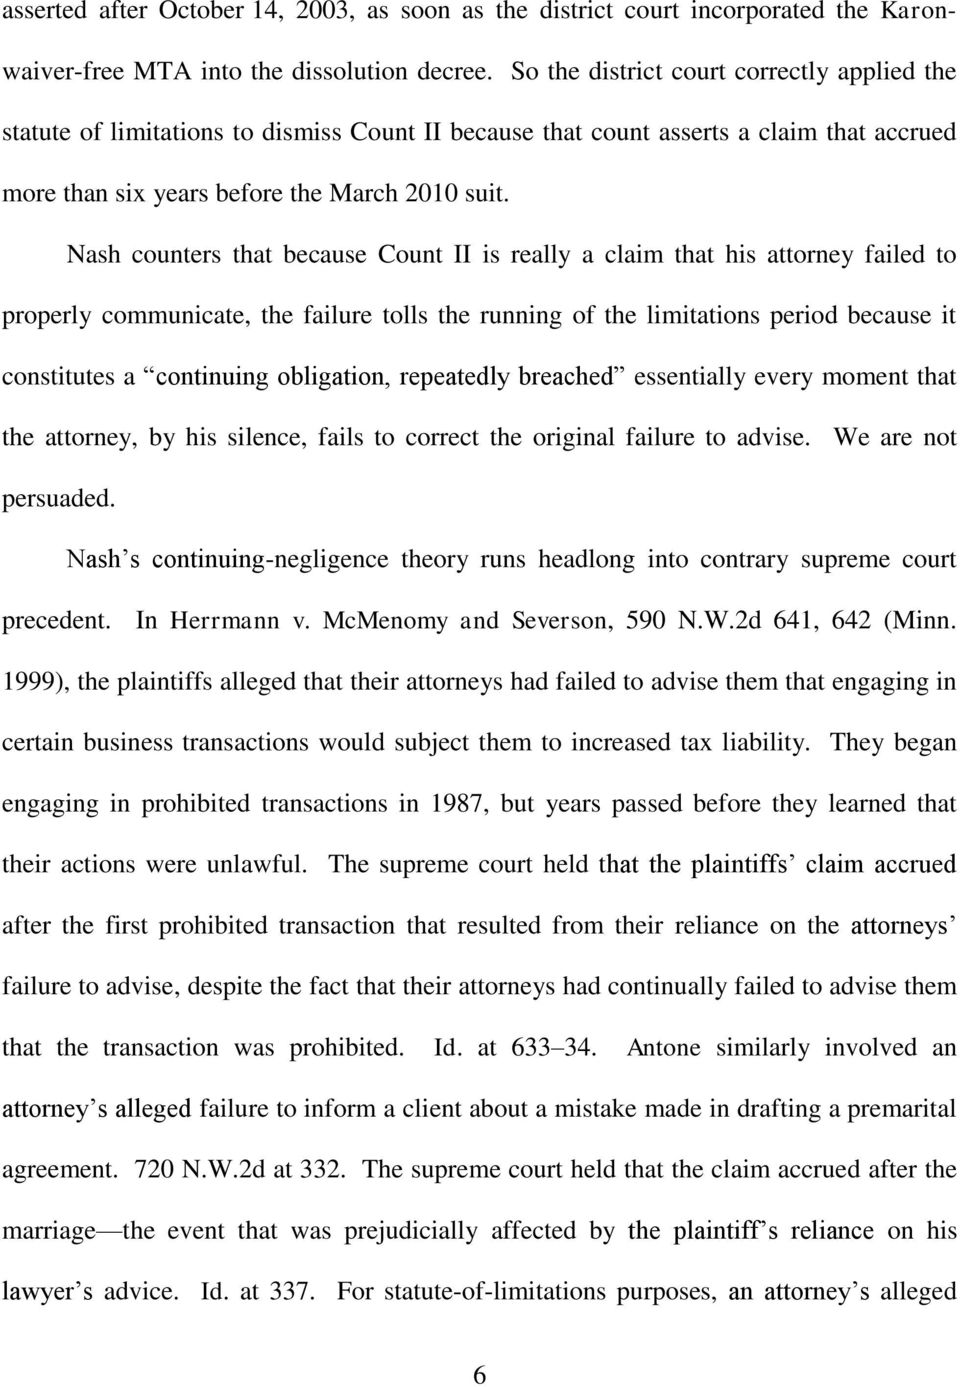 Nash counters that because Count II is really a claim that his attorney failed to properly communicate, the failure tolls the running of the limitations period because it constitutes a continuing